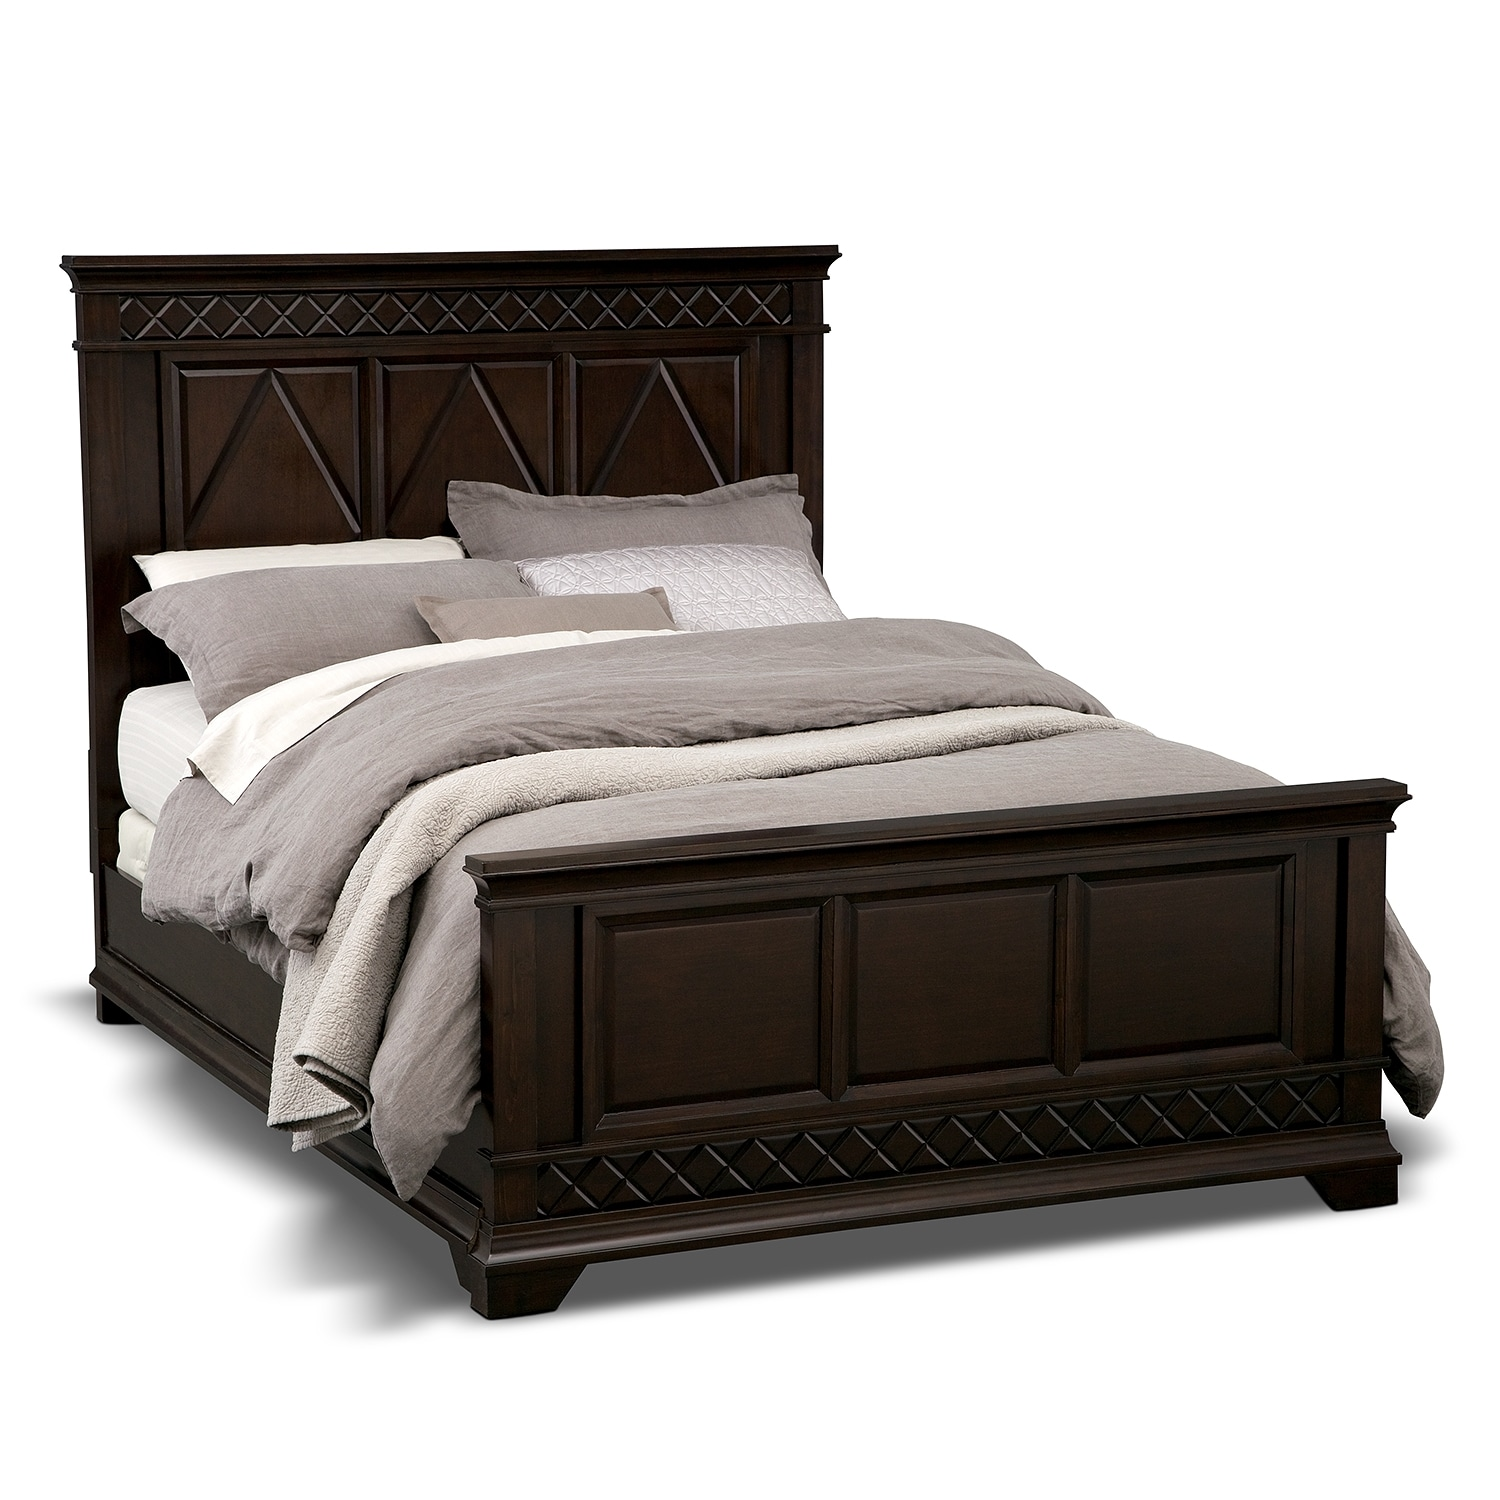 diamante bedroom king bed value city furniture